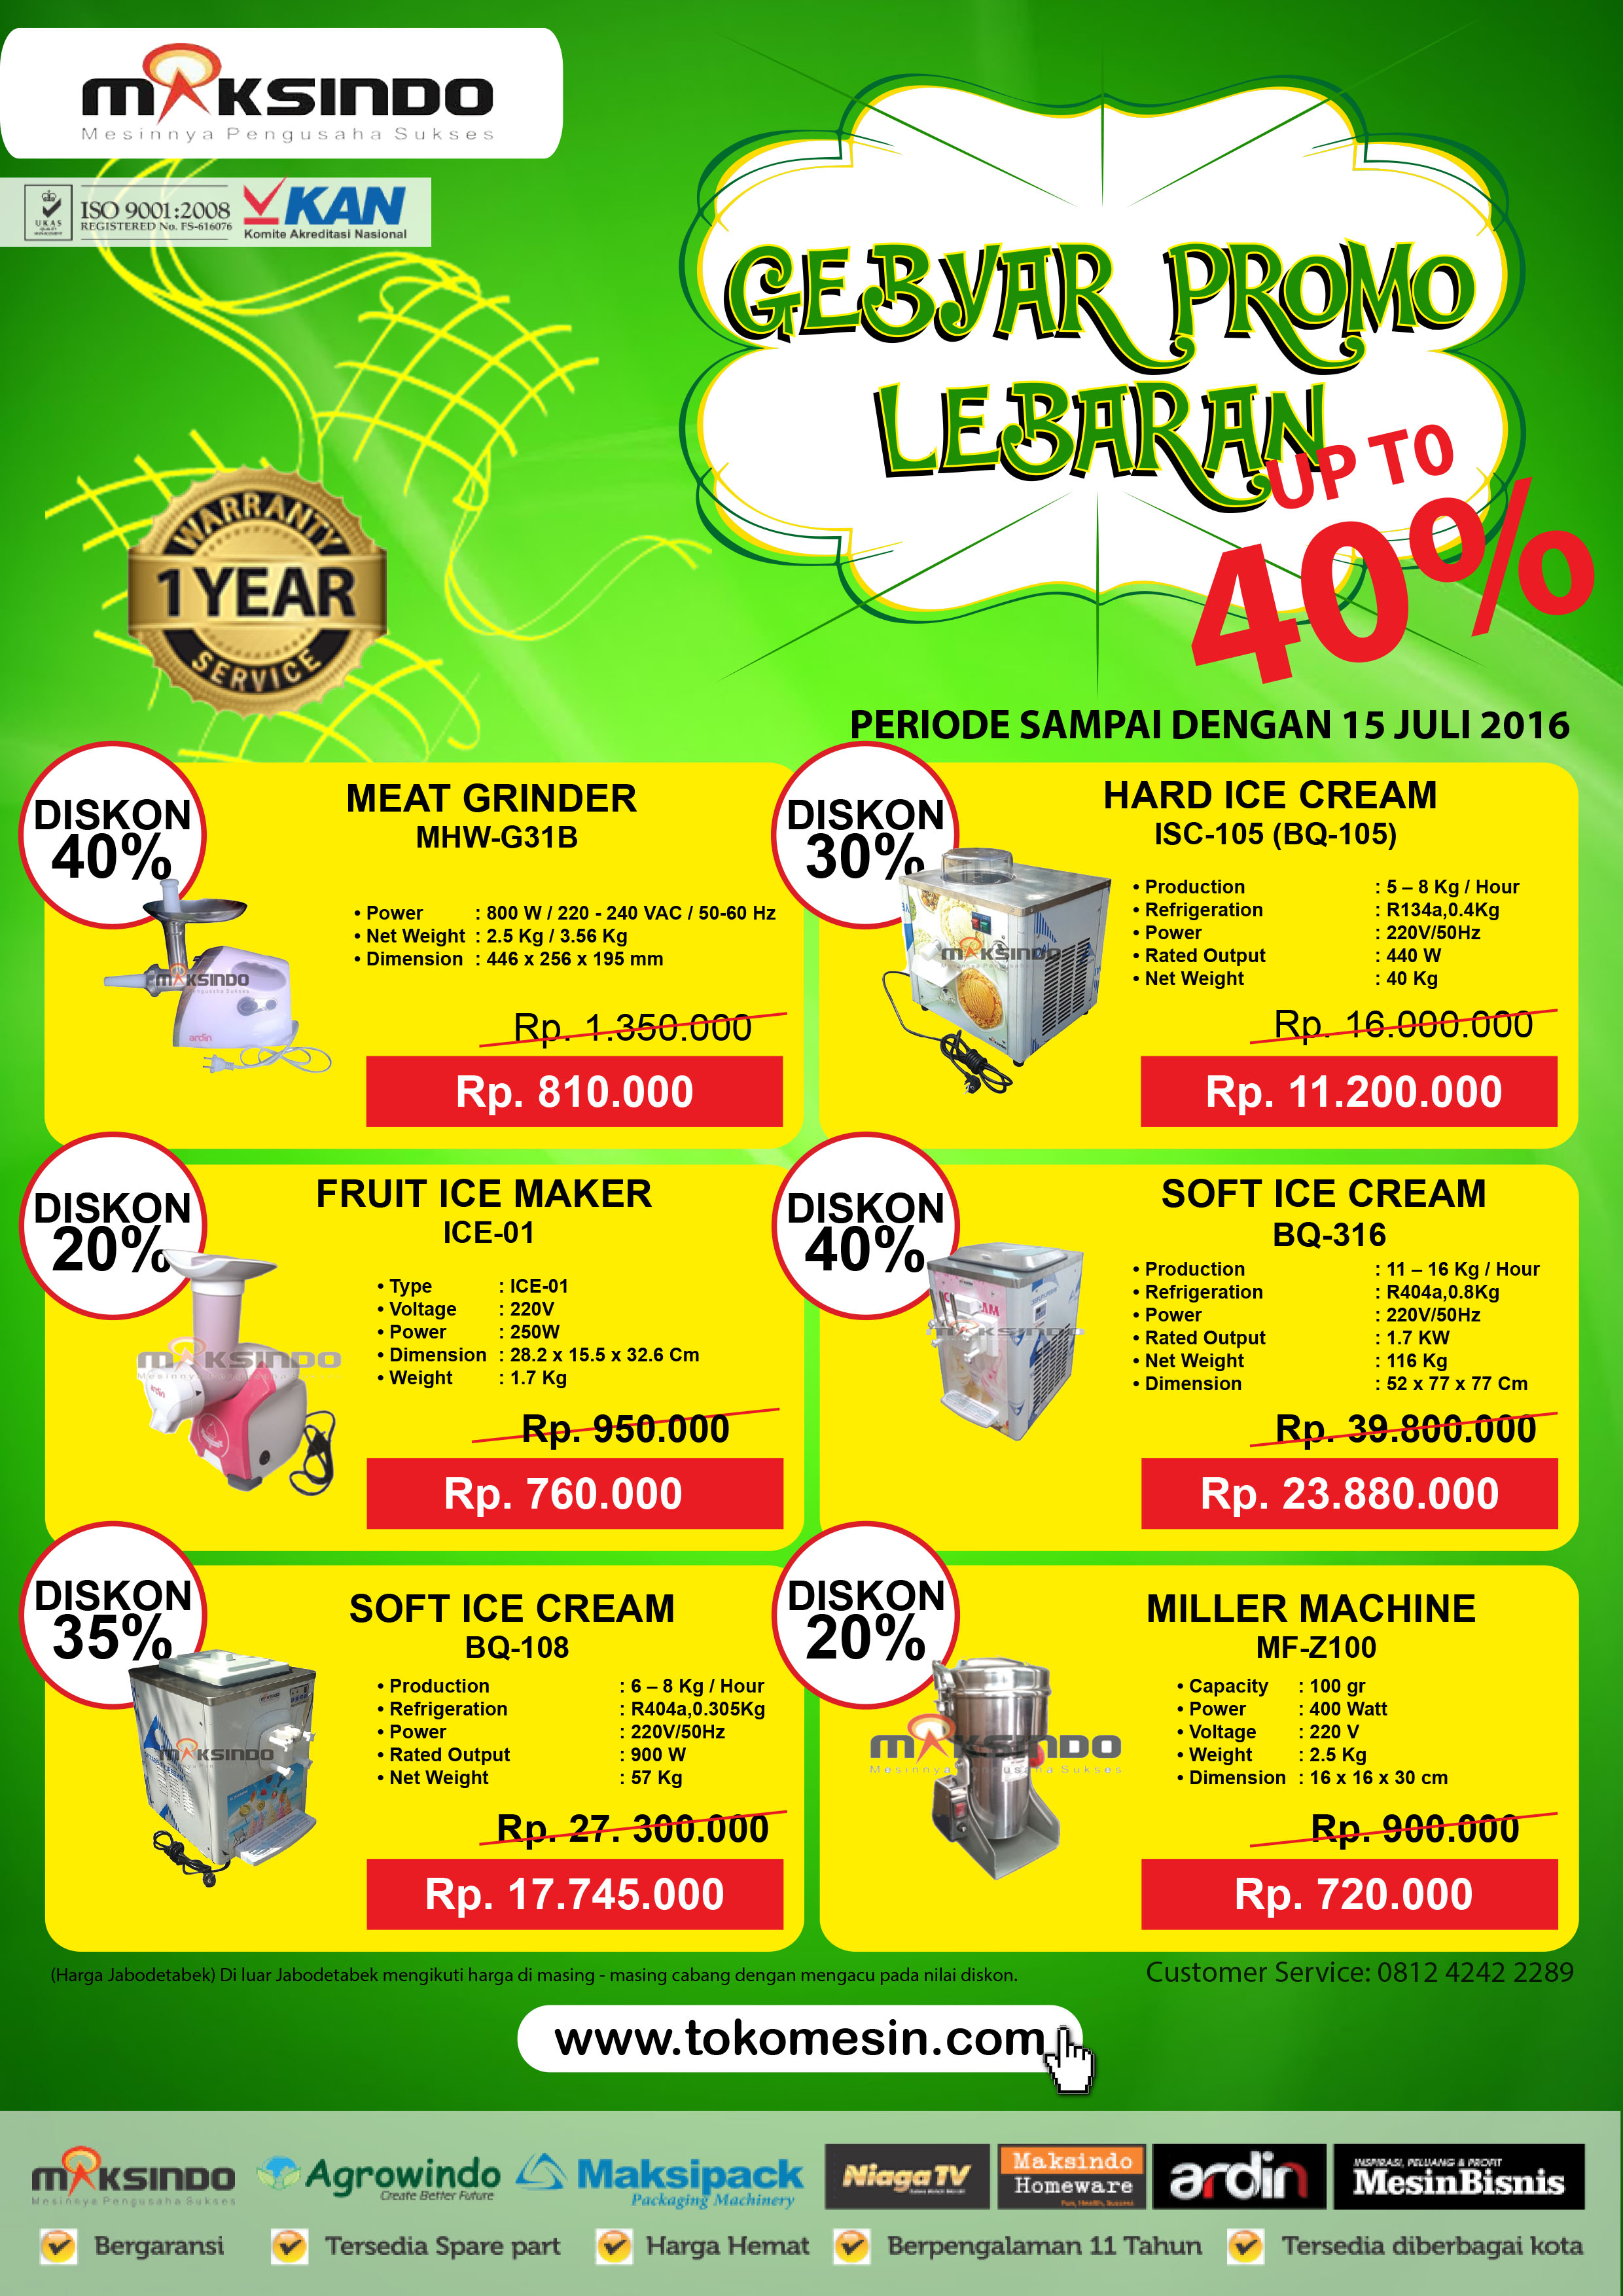 GEBYAR PROMO LEBARAN Up to 40%